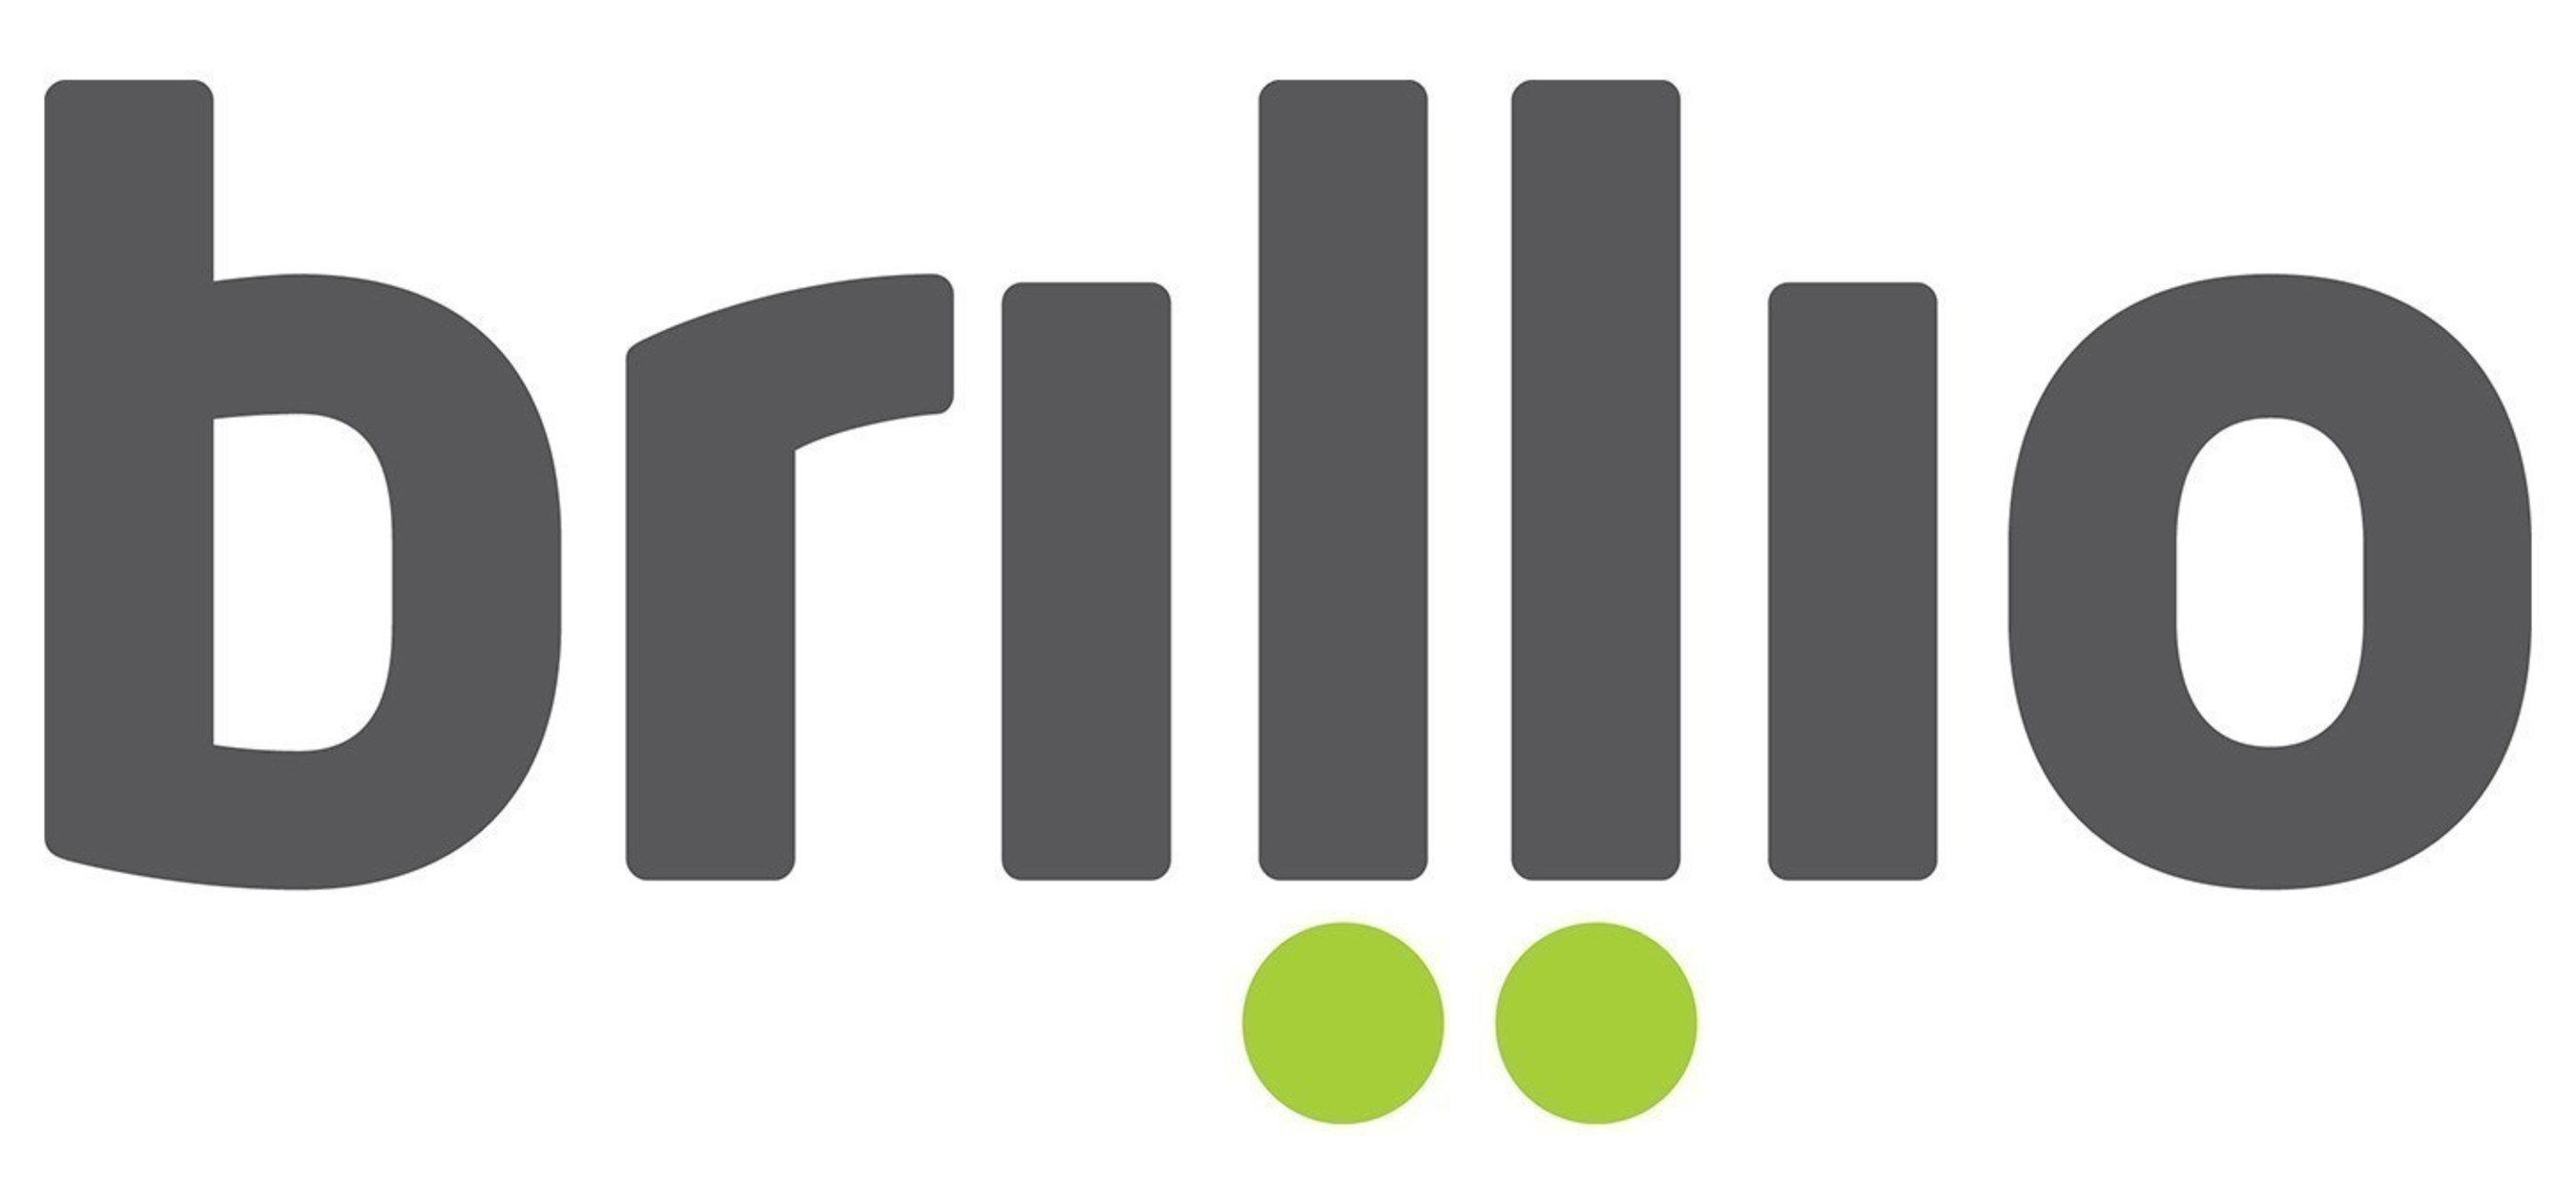 Brillio is a global technology consulting, software, and business solutions company that utilizes emerging ...